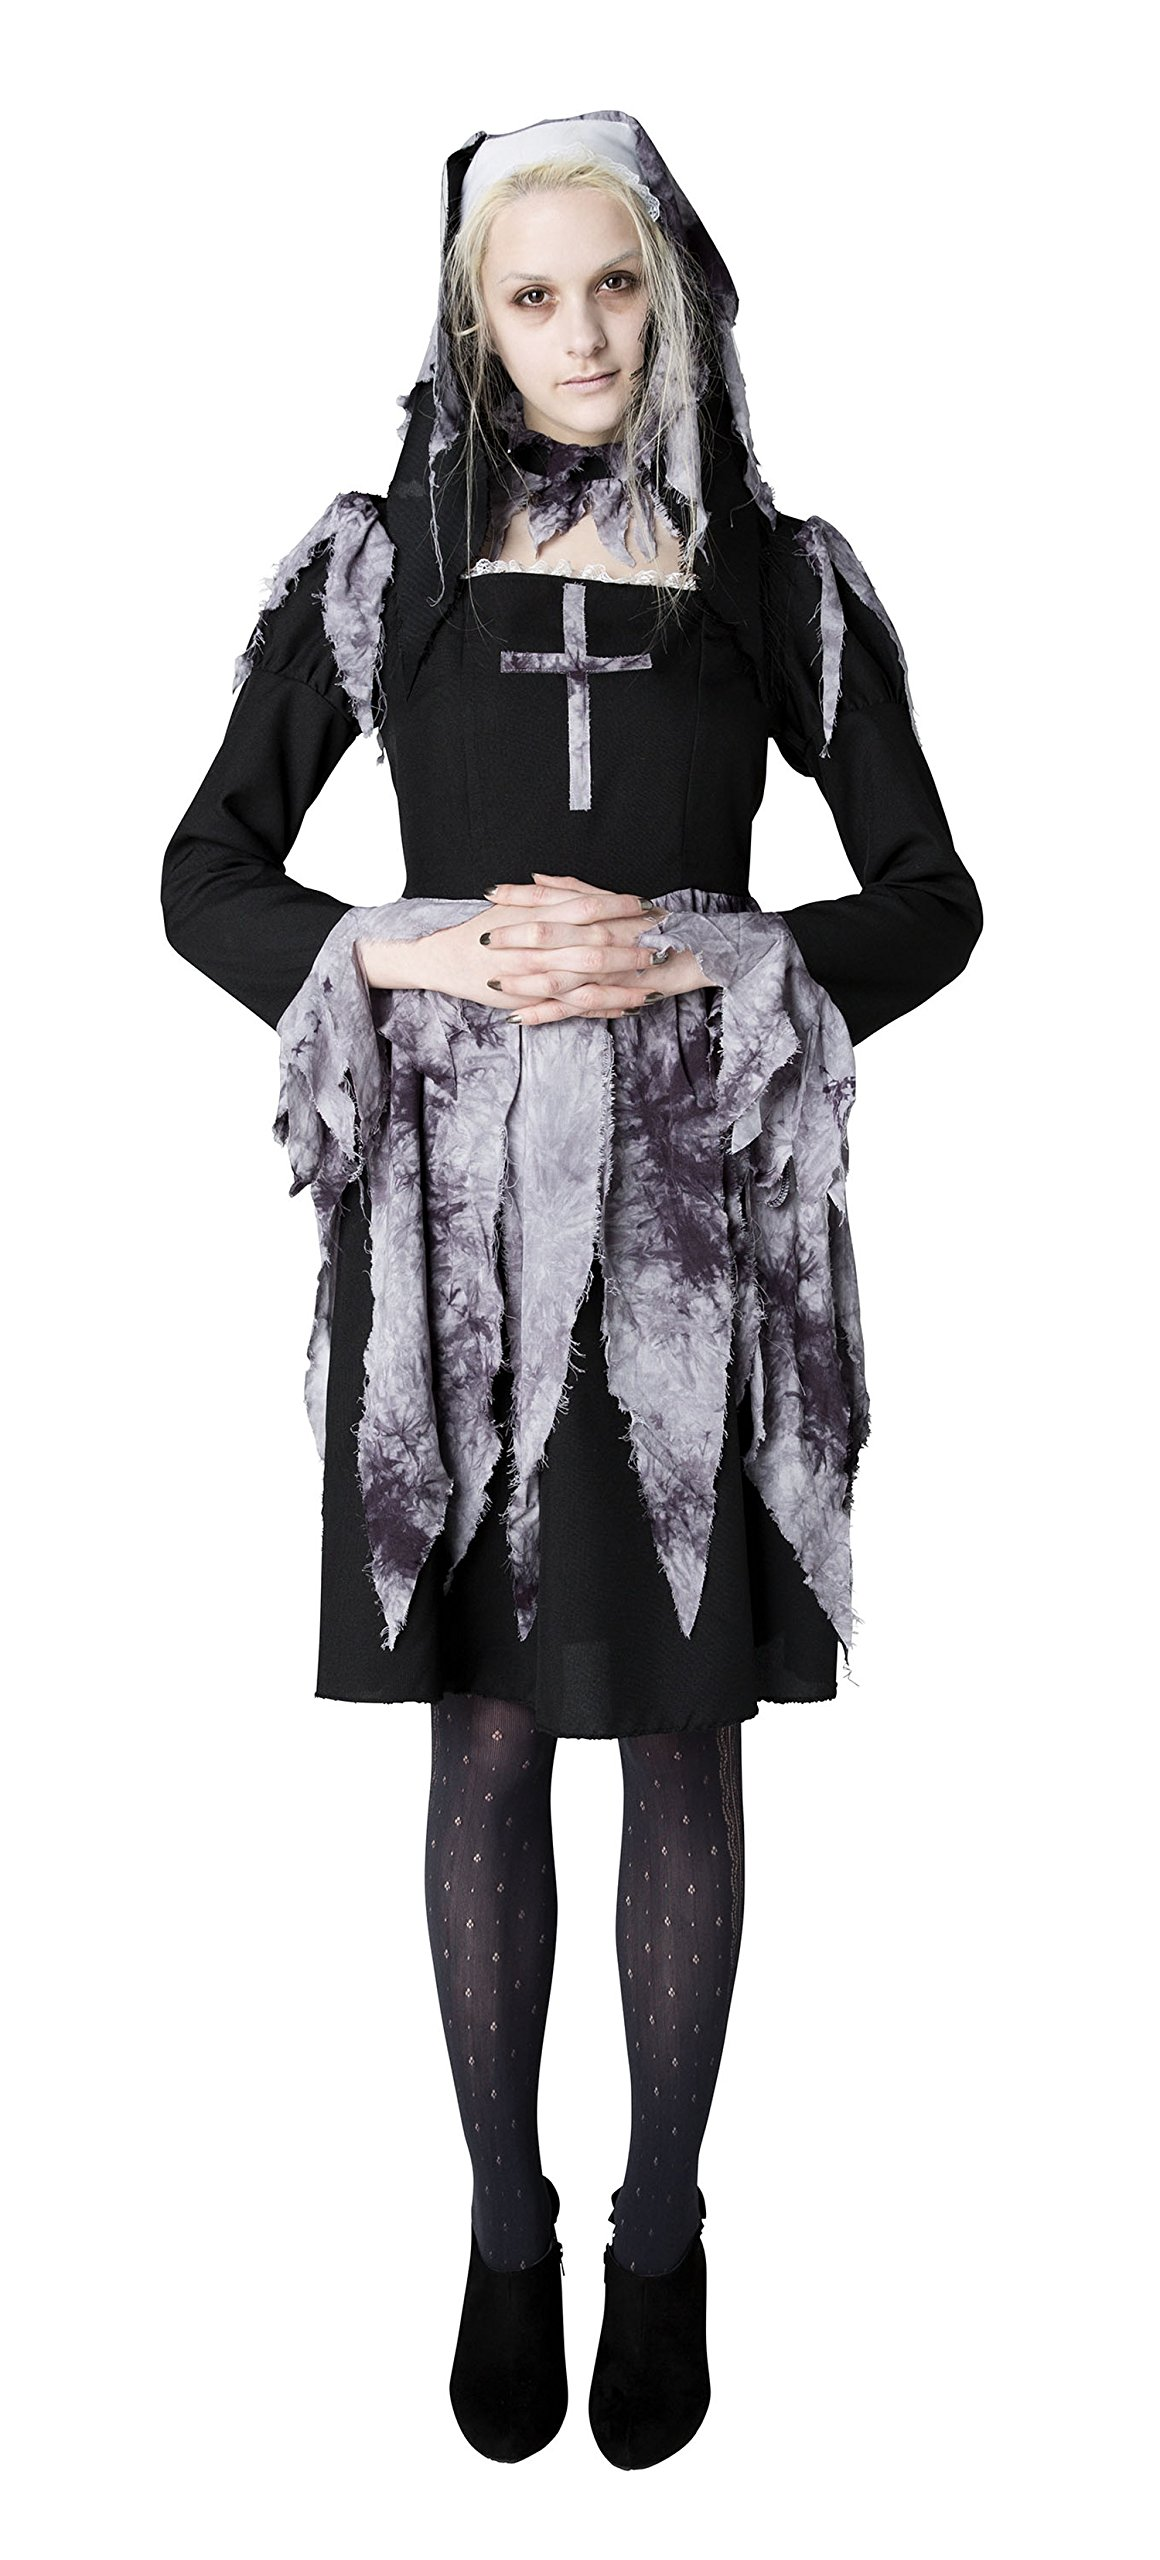 GHOST ghost sister nun costume ladies 155 cm-165 cm genuine stone